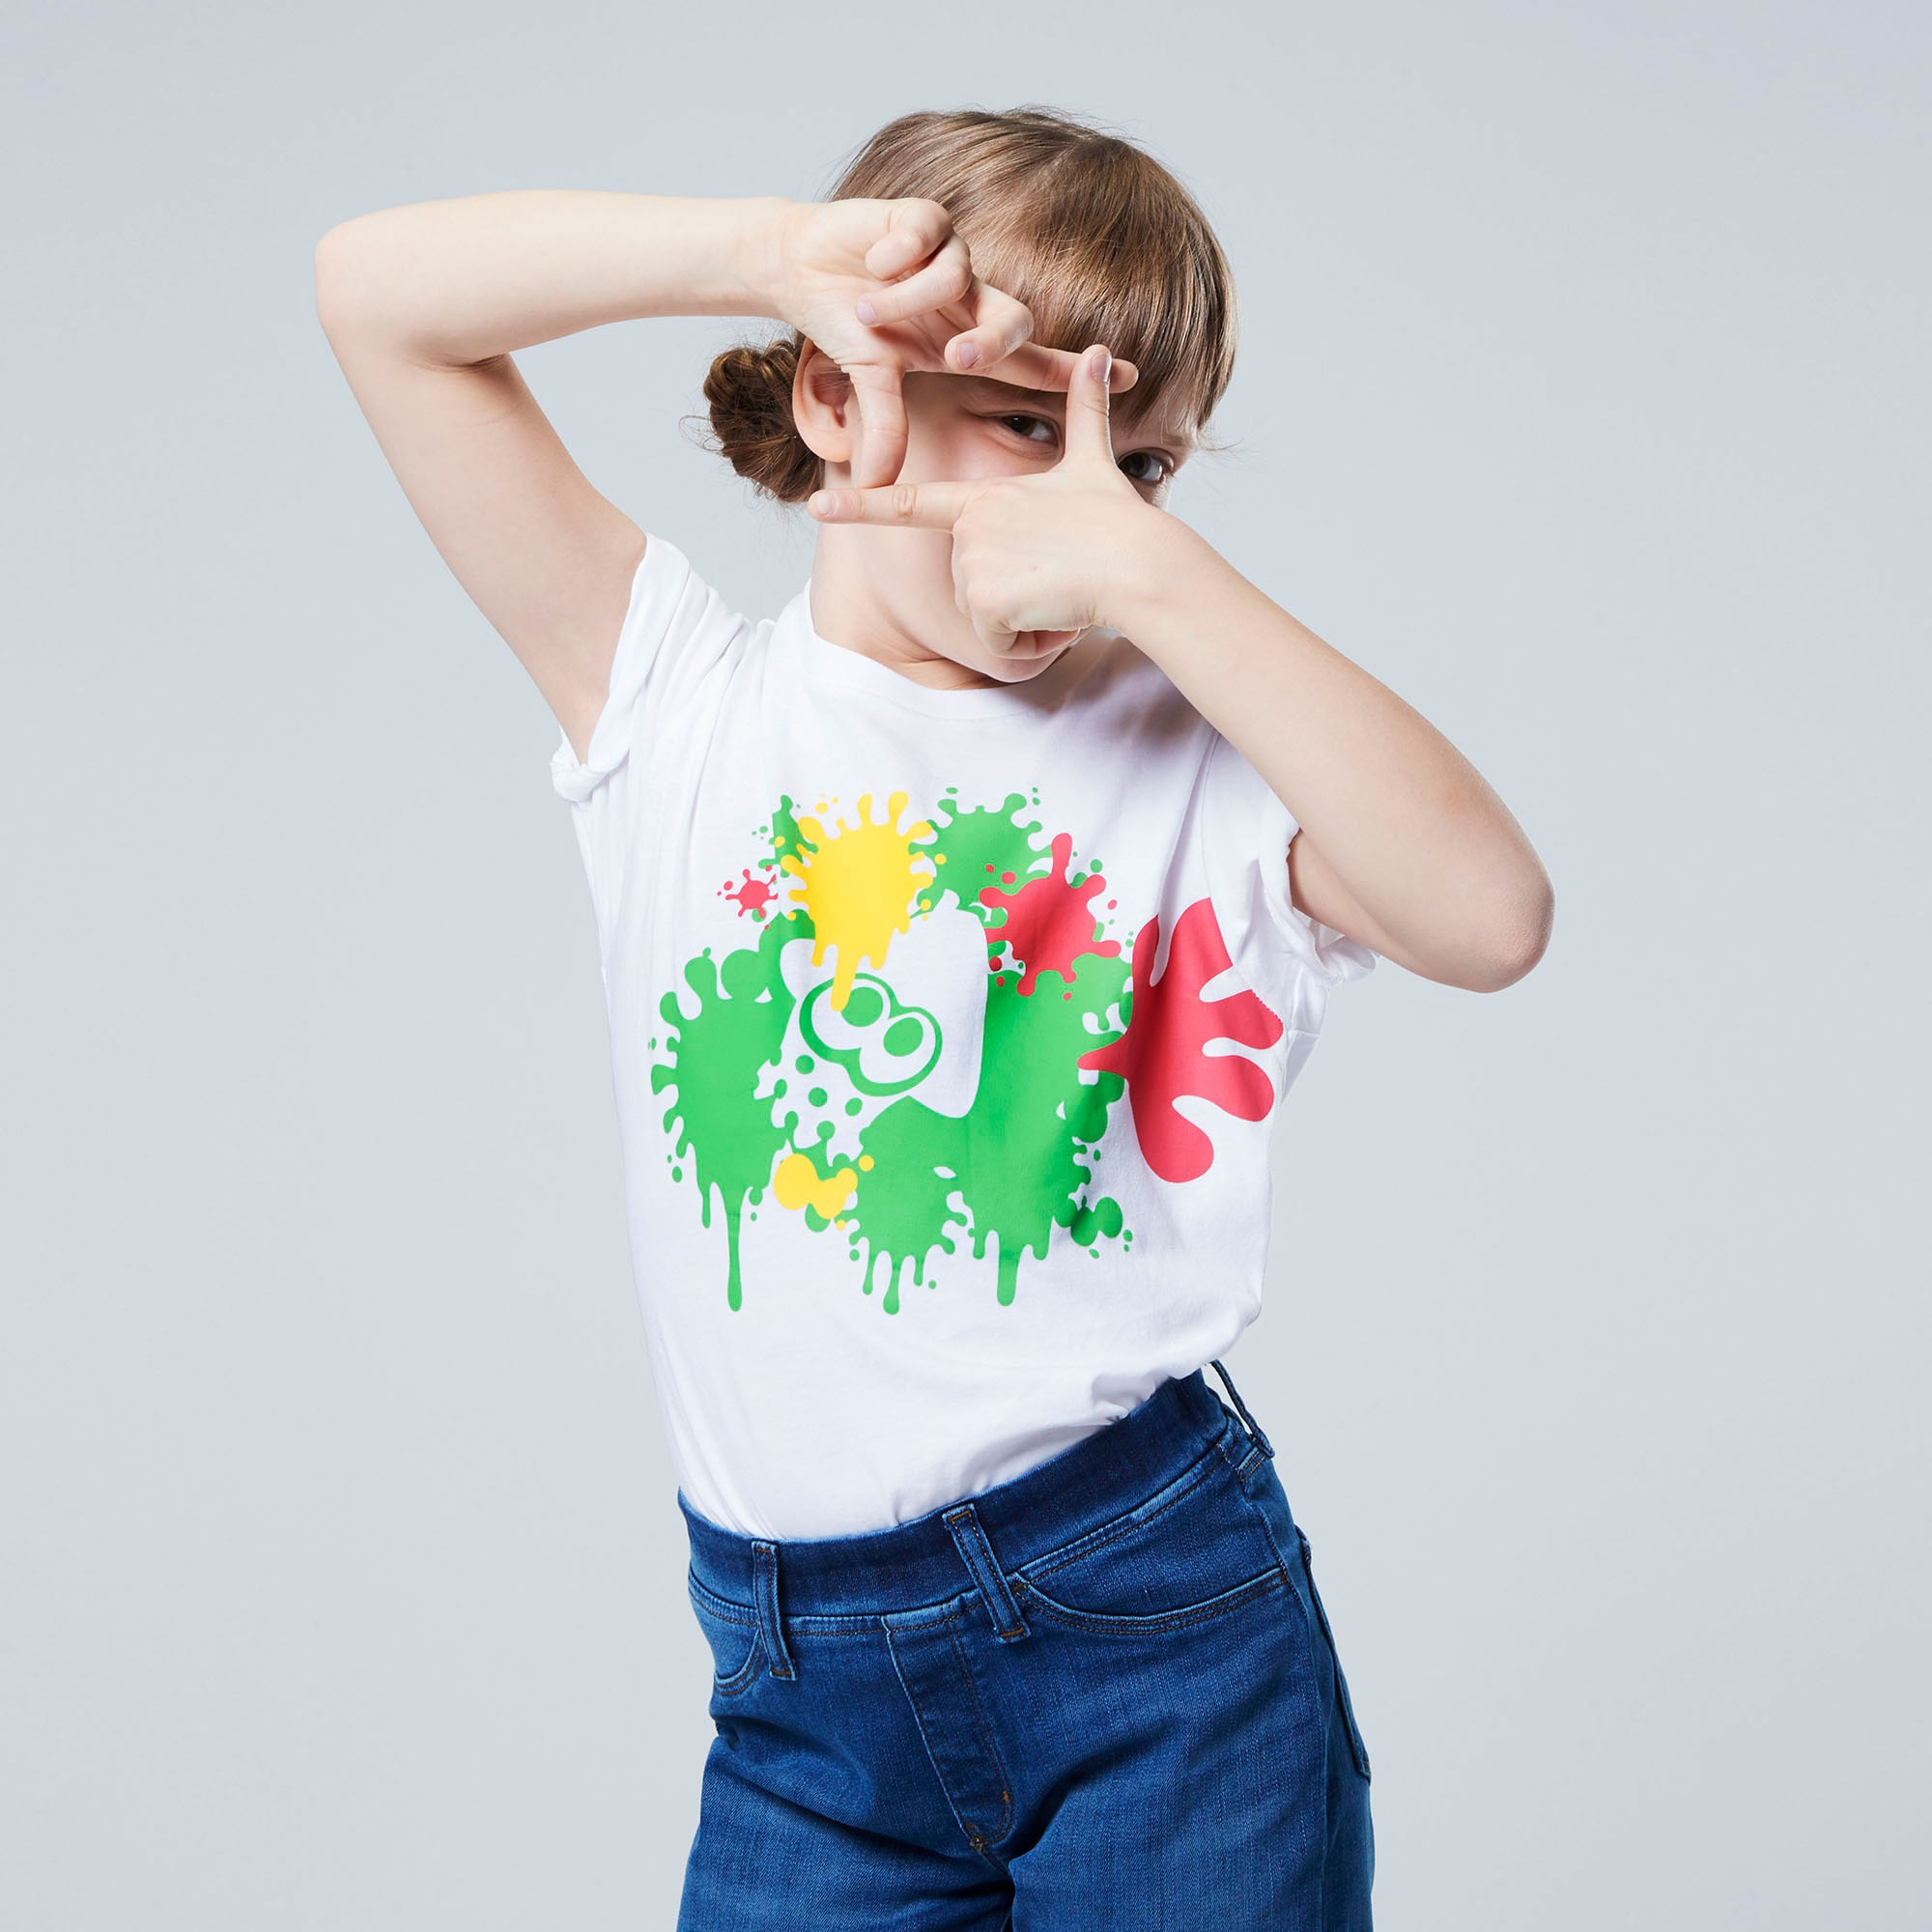 ALERTE CUTENESS! Uniqlo a des chandails à l'effigie de Splatoon! WOW!